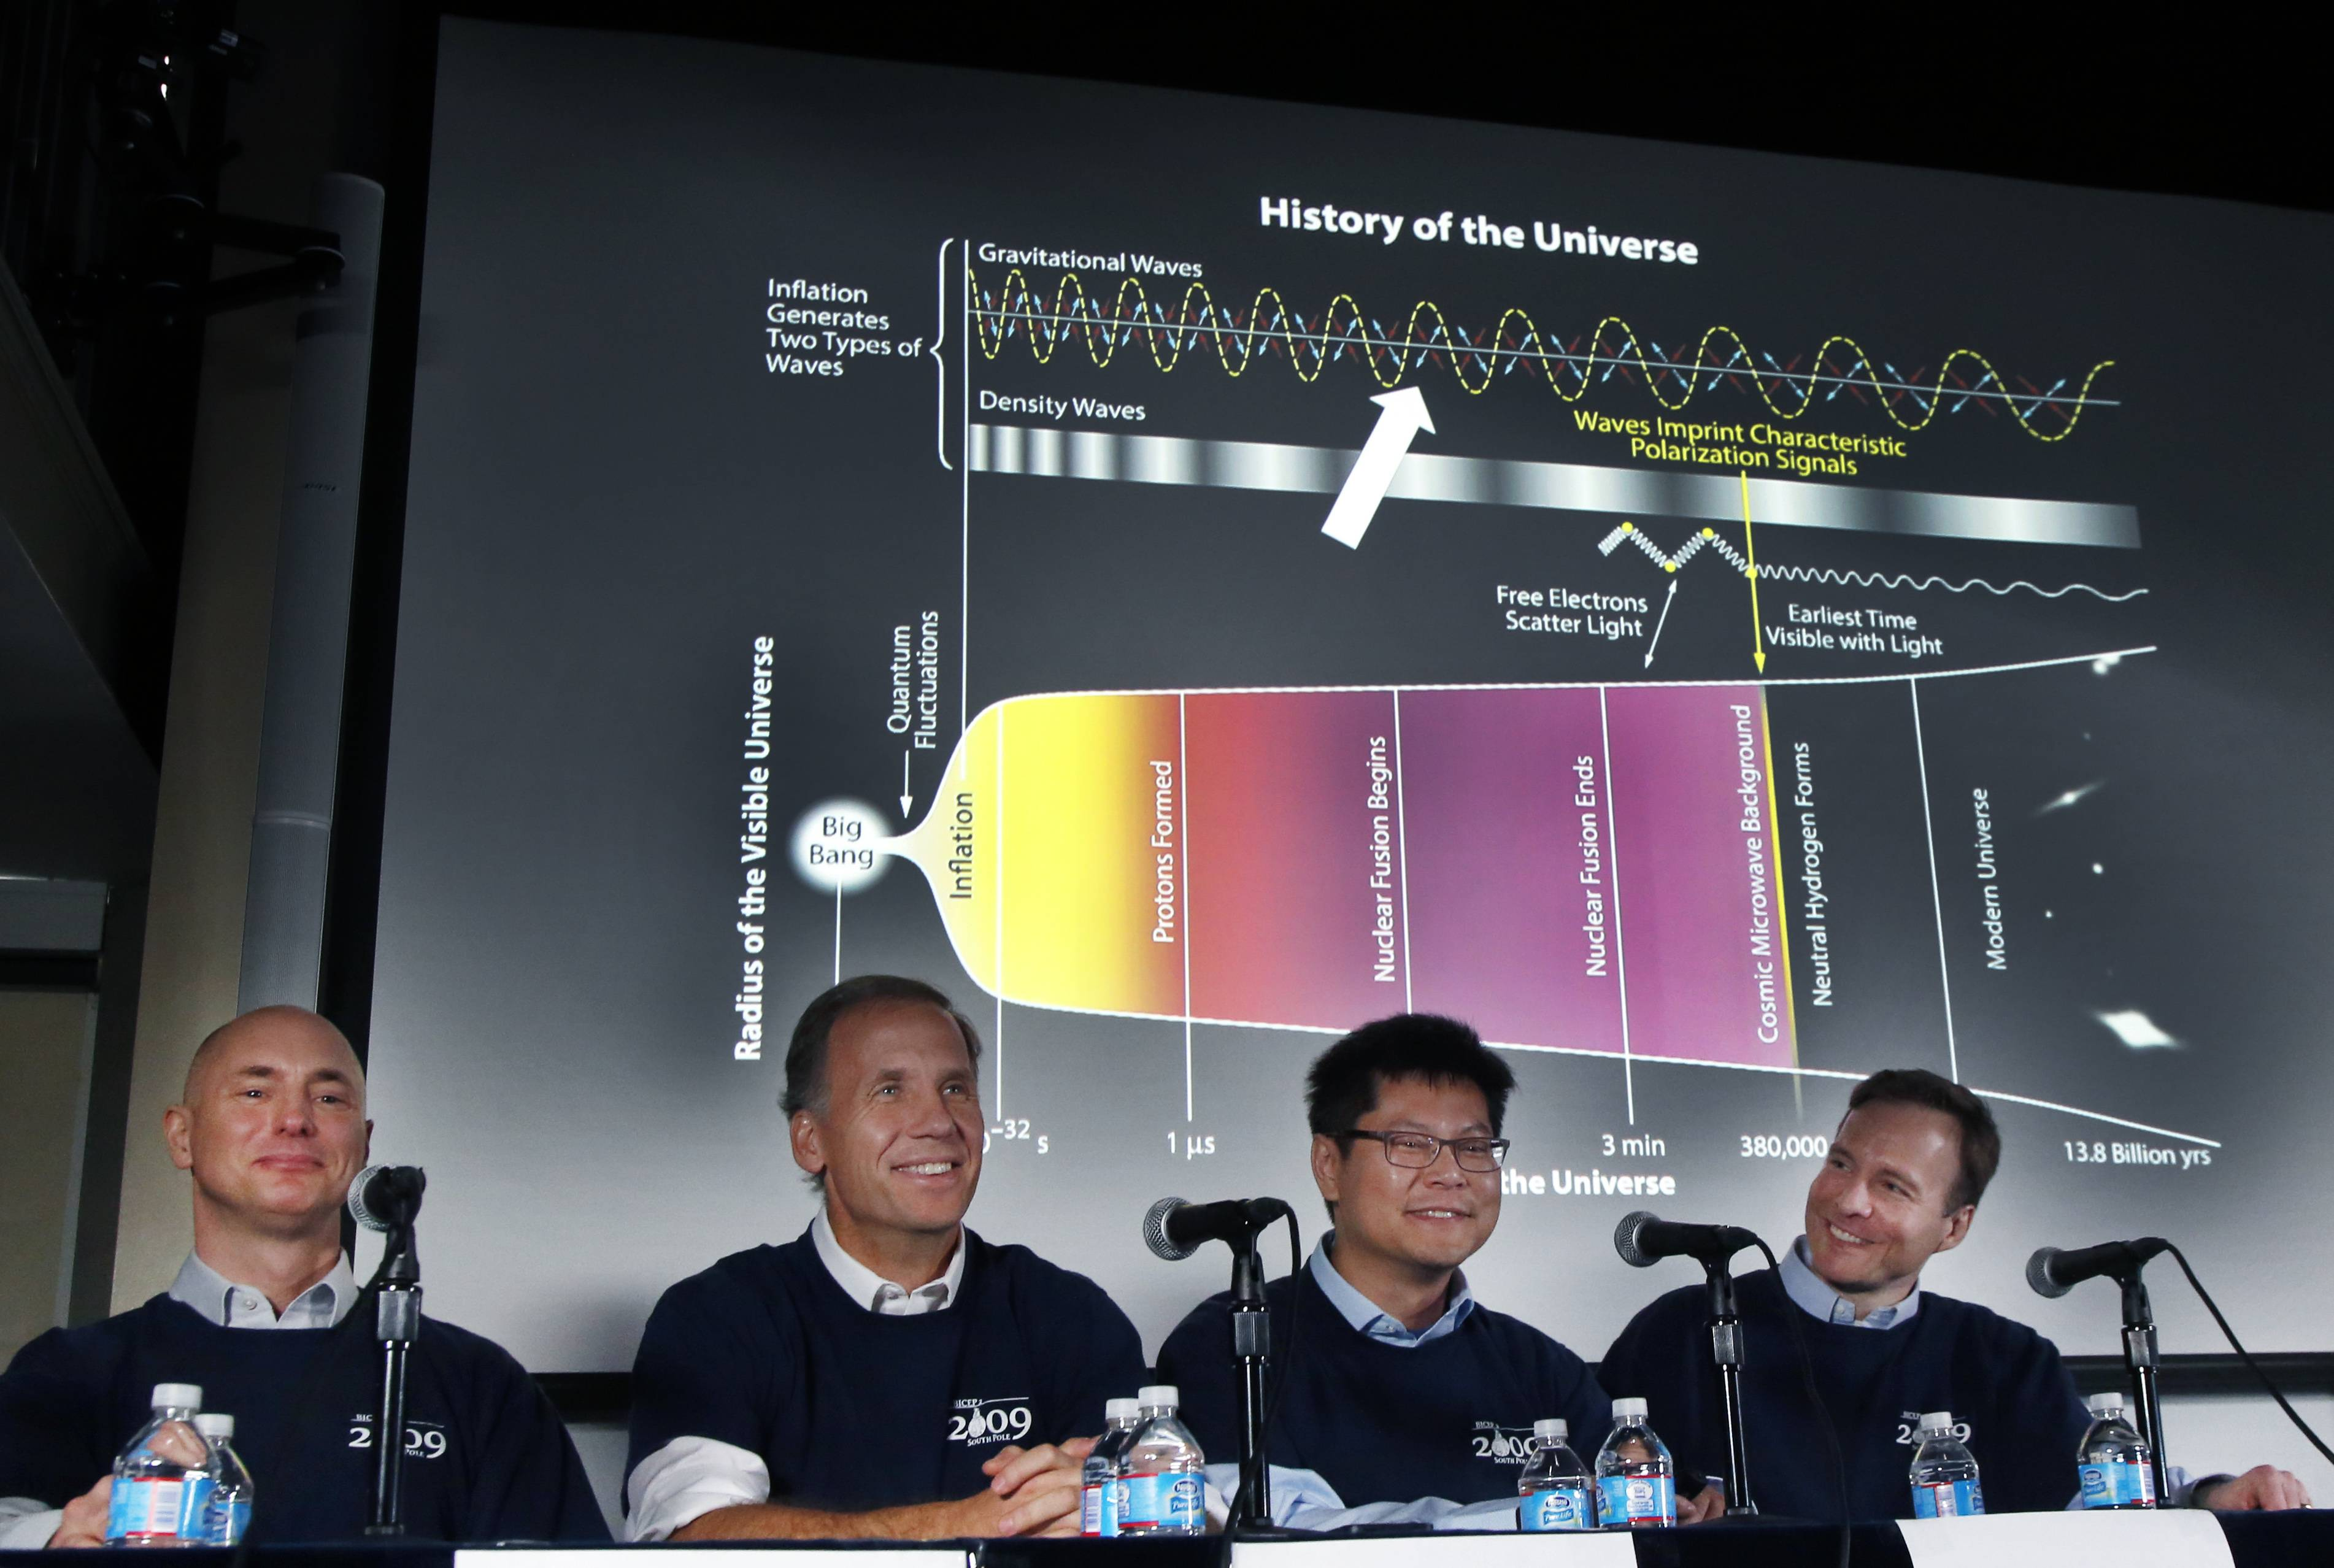 Scientists, from left, Clem Pryke, Jamie Bock, Chao-Lin Kuo and John Kovac conduct a news conference at the Harvard-Smithsonian Center for Astrophysics in Cambridge, Mass., Monday, regarding their new findings on the early expansion of the universe.